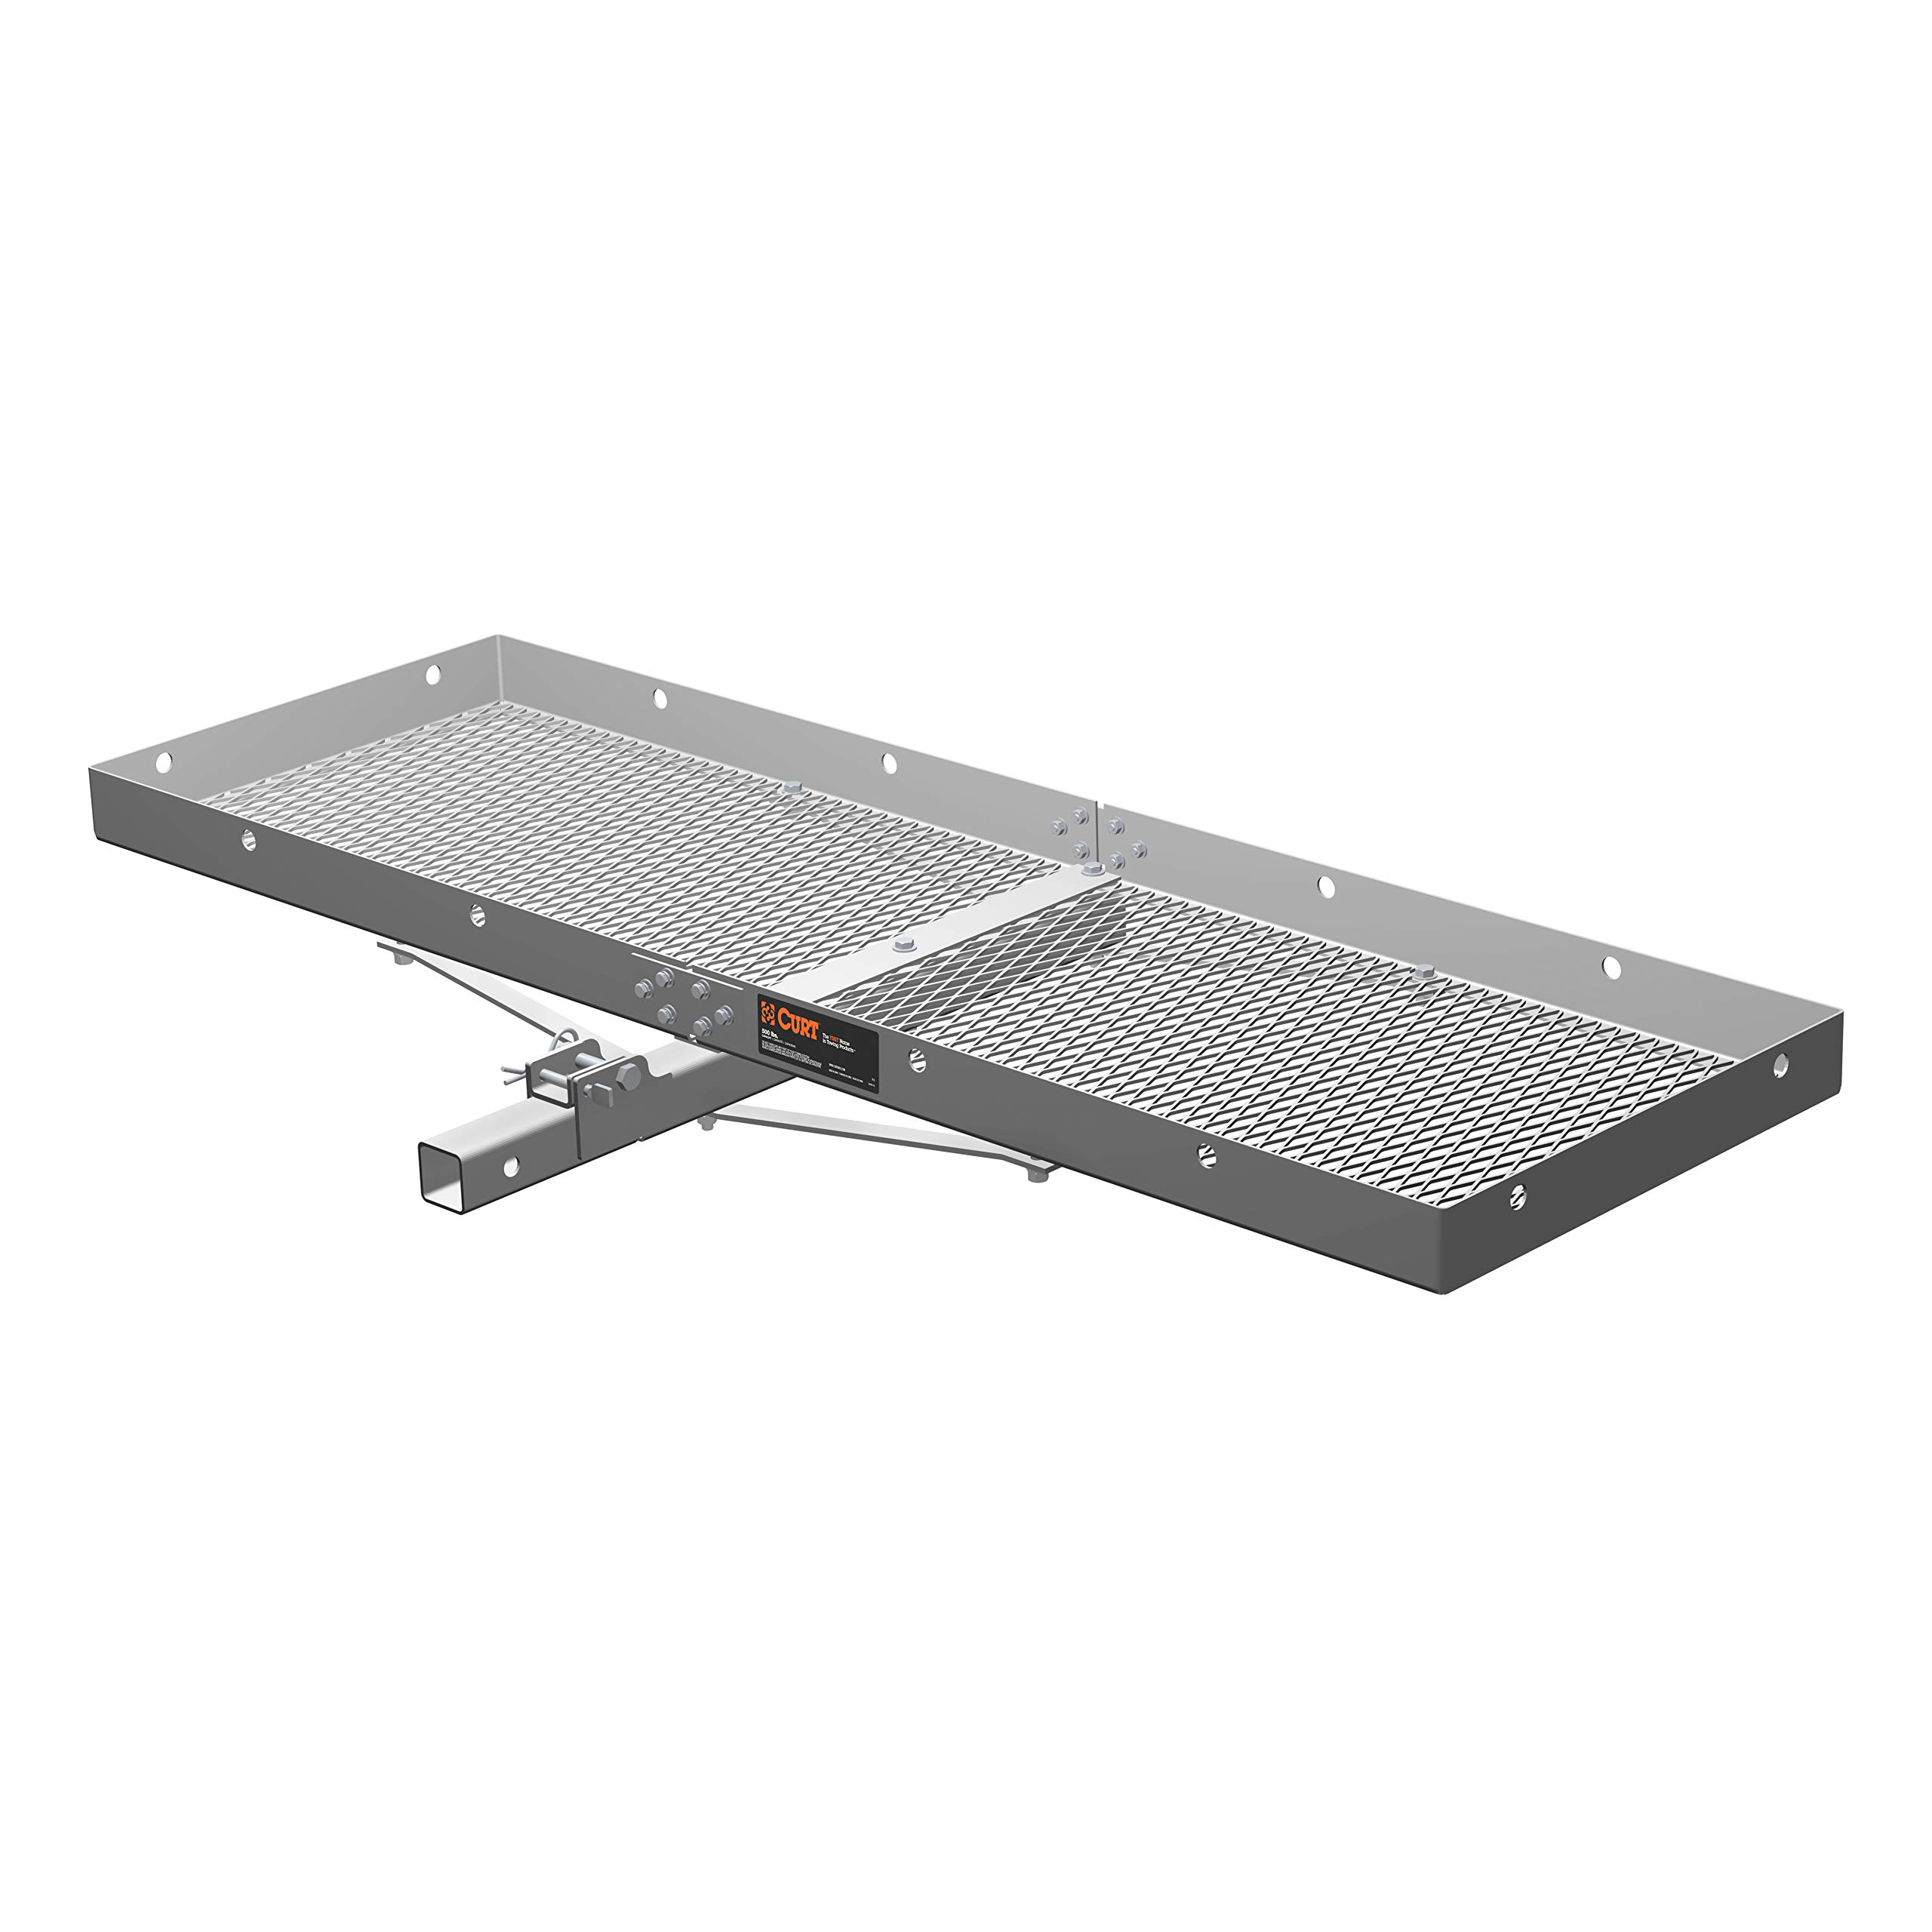 CURT 18100 500 lbs. Capacity Tray-Style Trailer Hitch Cargo Carrier, Fits 2-Inch Receiver by CURT